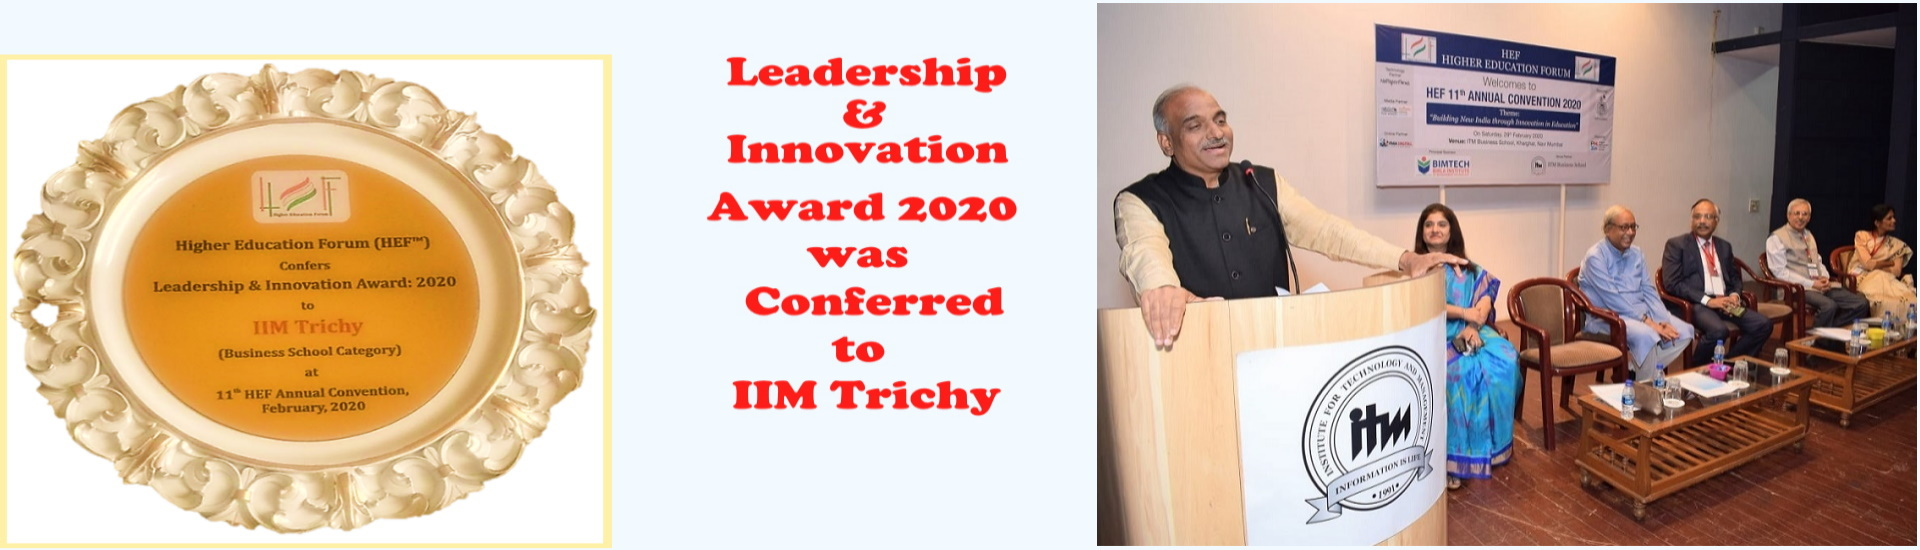 Leadership & Innovation Award 2020 was Conferred to IIM Trichy